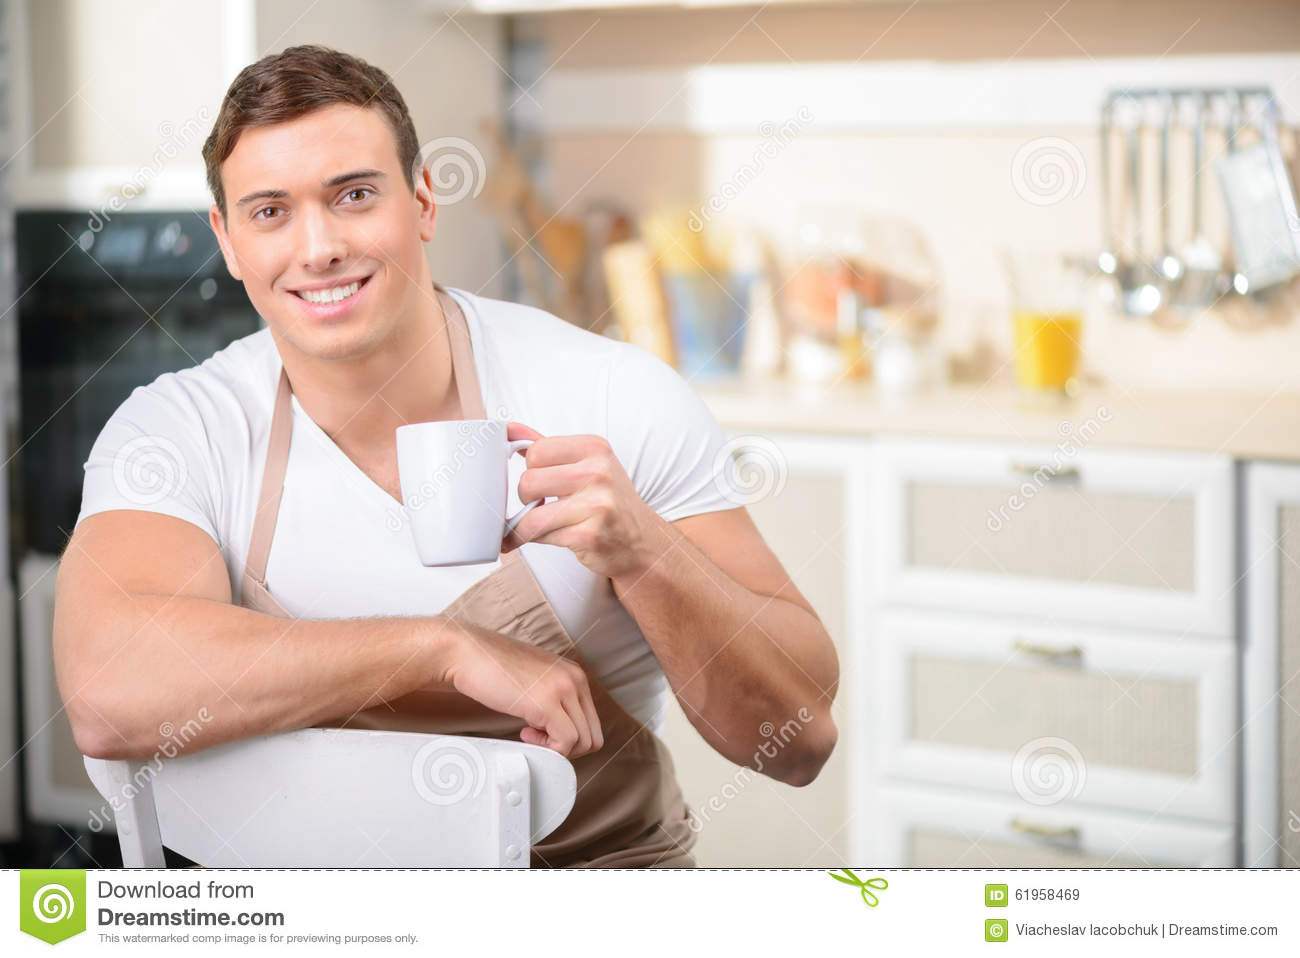 Man With A Cup Of Drink In The Kitchen Stock Image - Image of ...